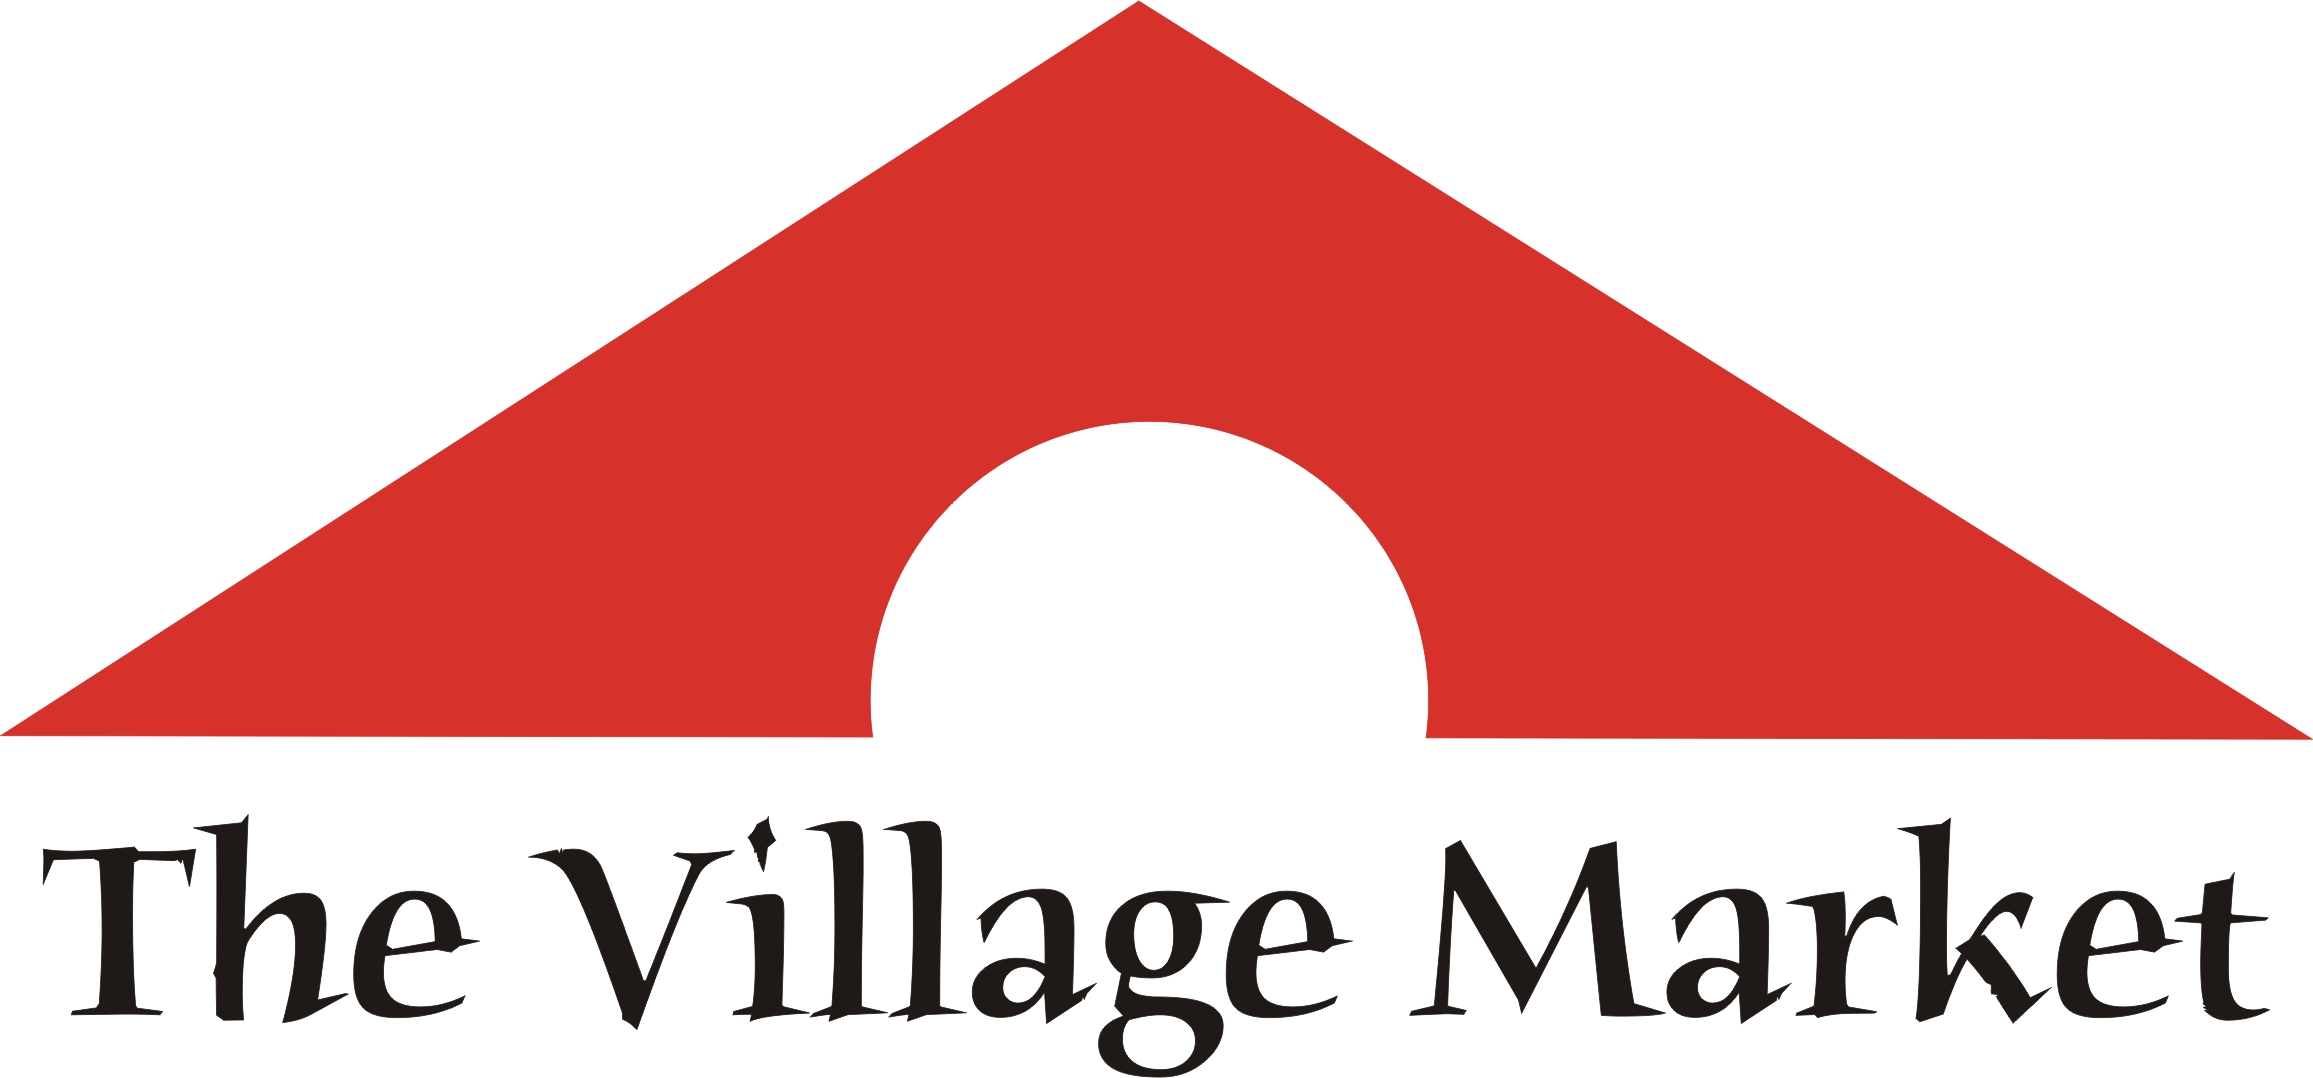 Market clipart village market Someday The Photography Village By